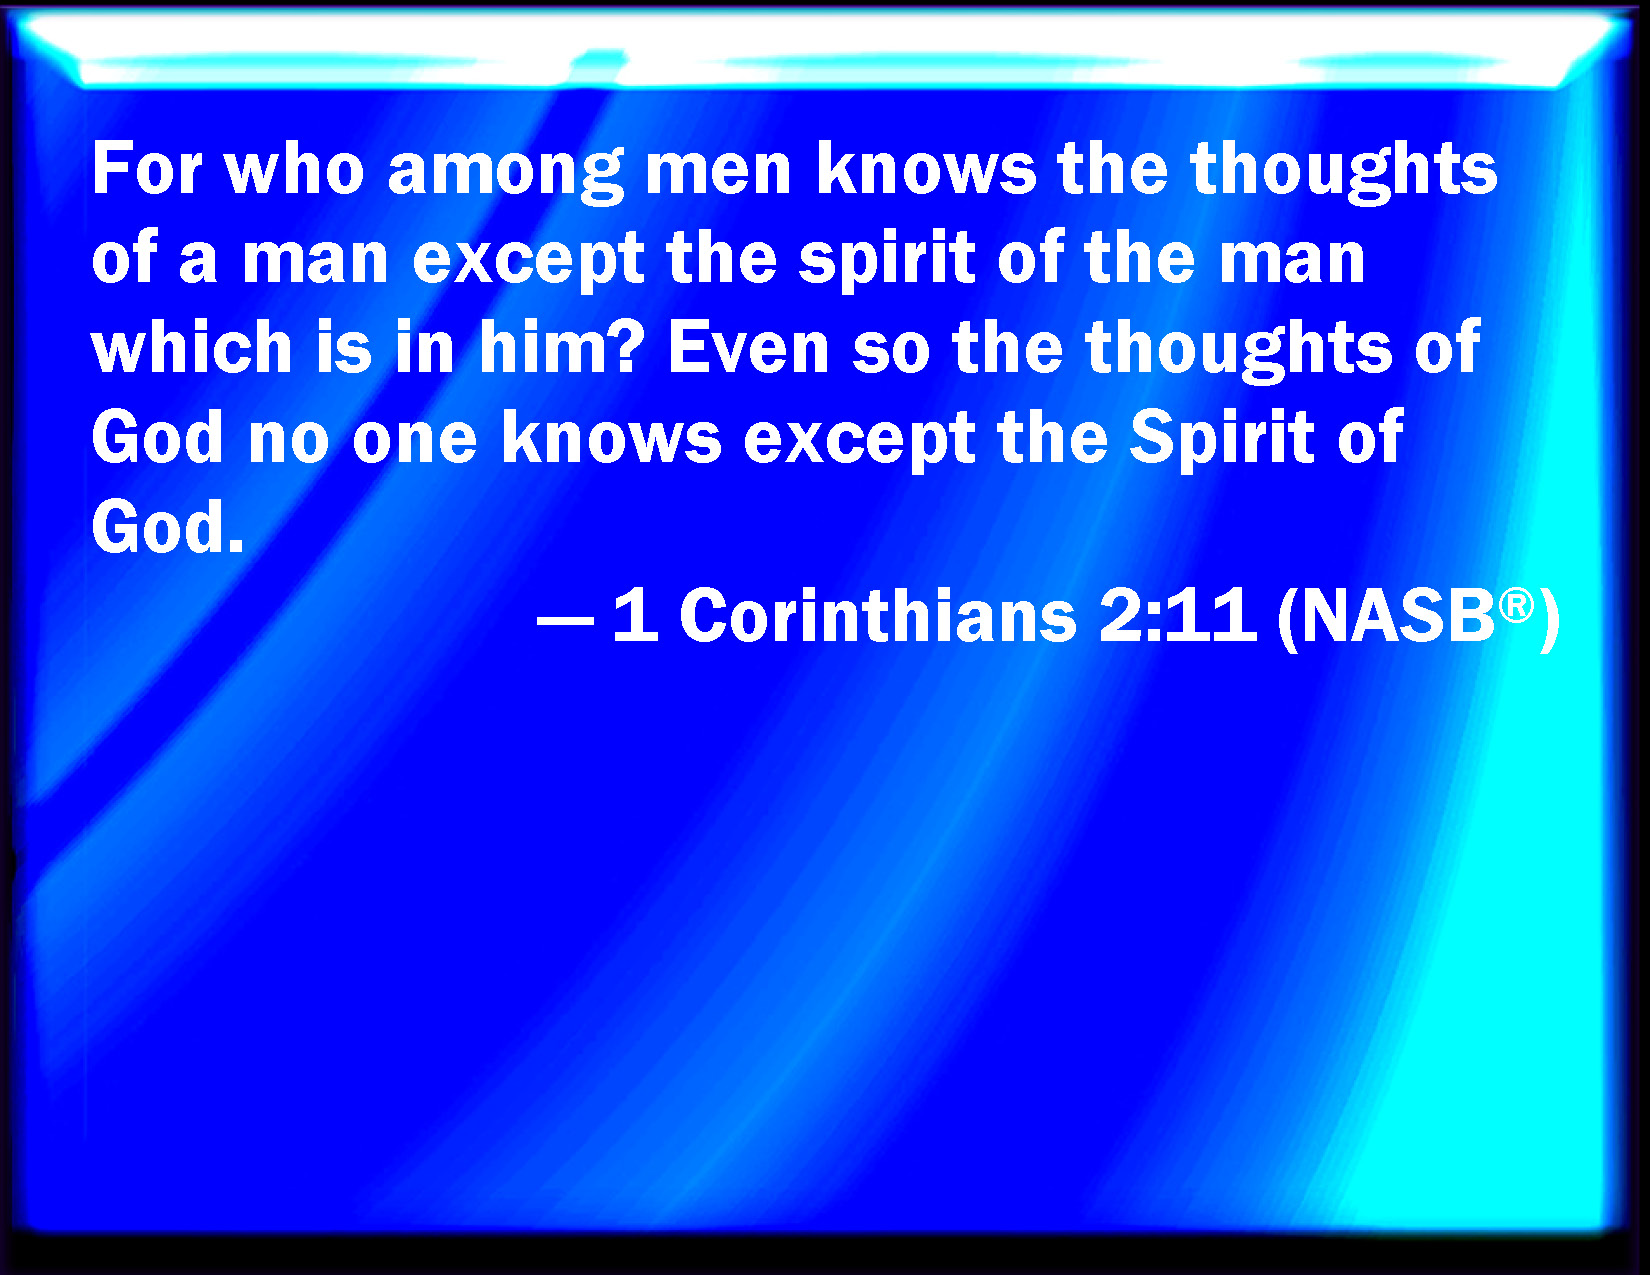 WISDOM FROM THE SPIRIT. NEW YEAR GREETINGS - WISDOM TO GUIDE IN 2016. I SEEK WISDOM FROM 1 CORINTHIANS, CHAPTER 2, VERSE 11.